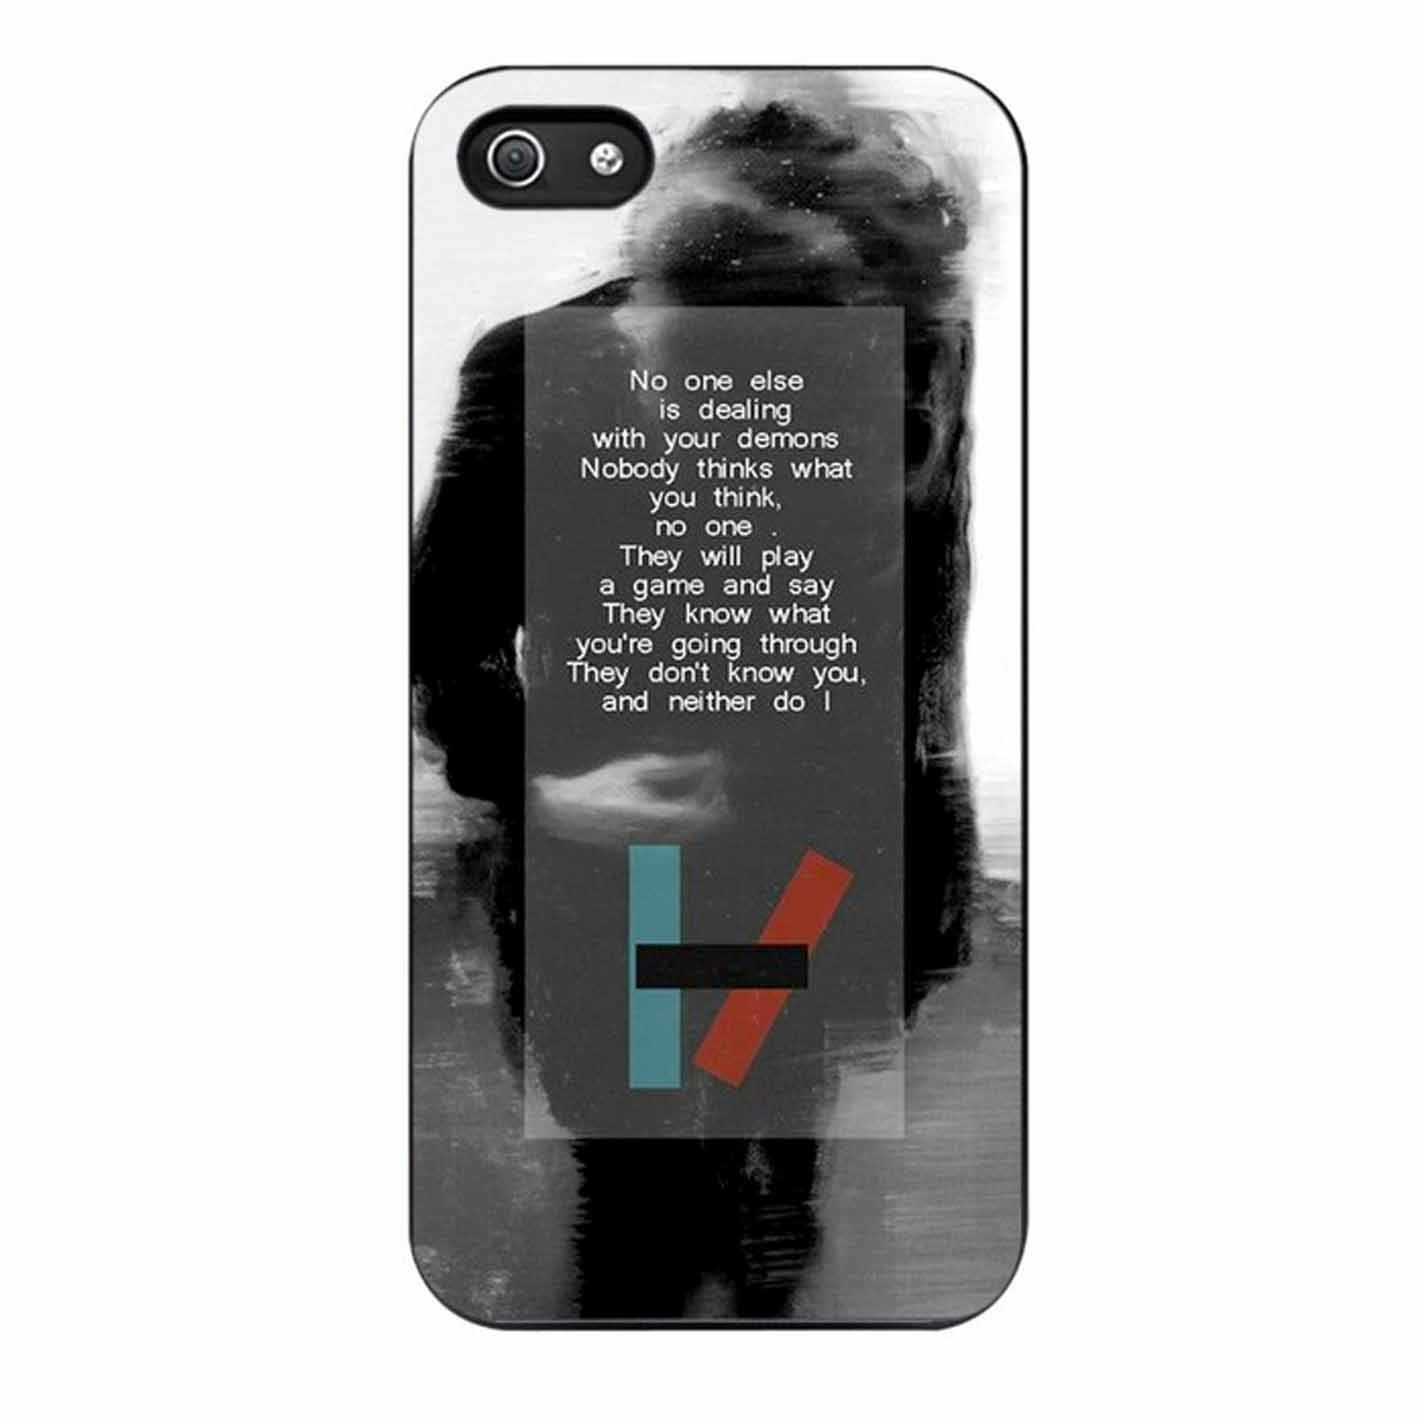 twenty one pilots kitchen sink iphone 5 case iphone